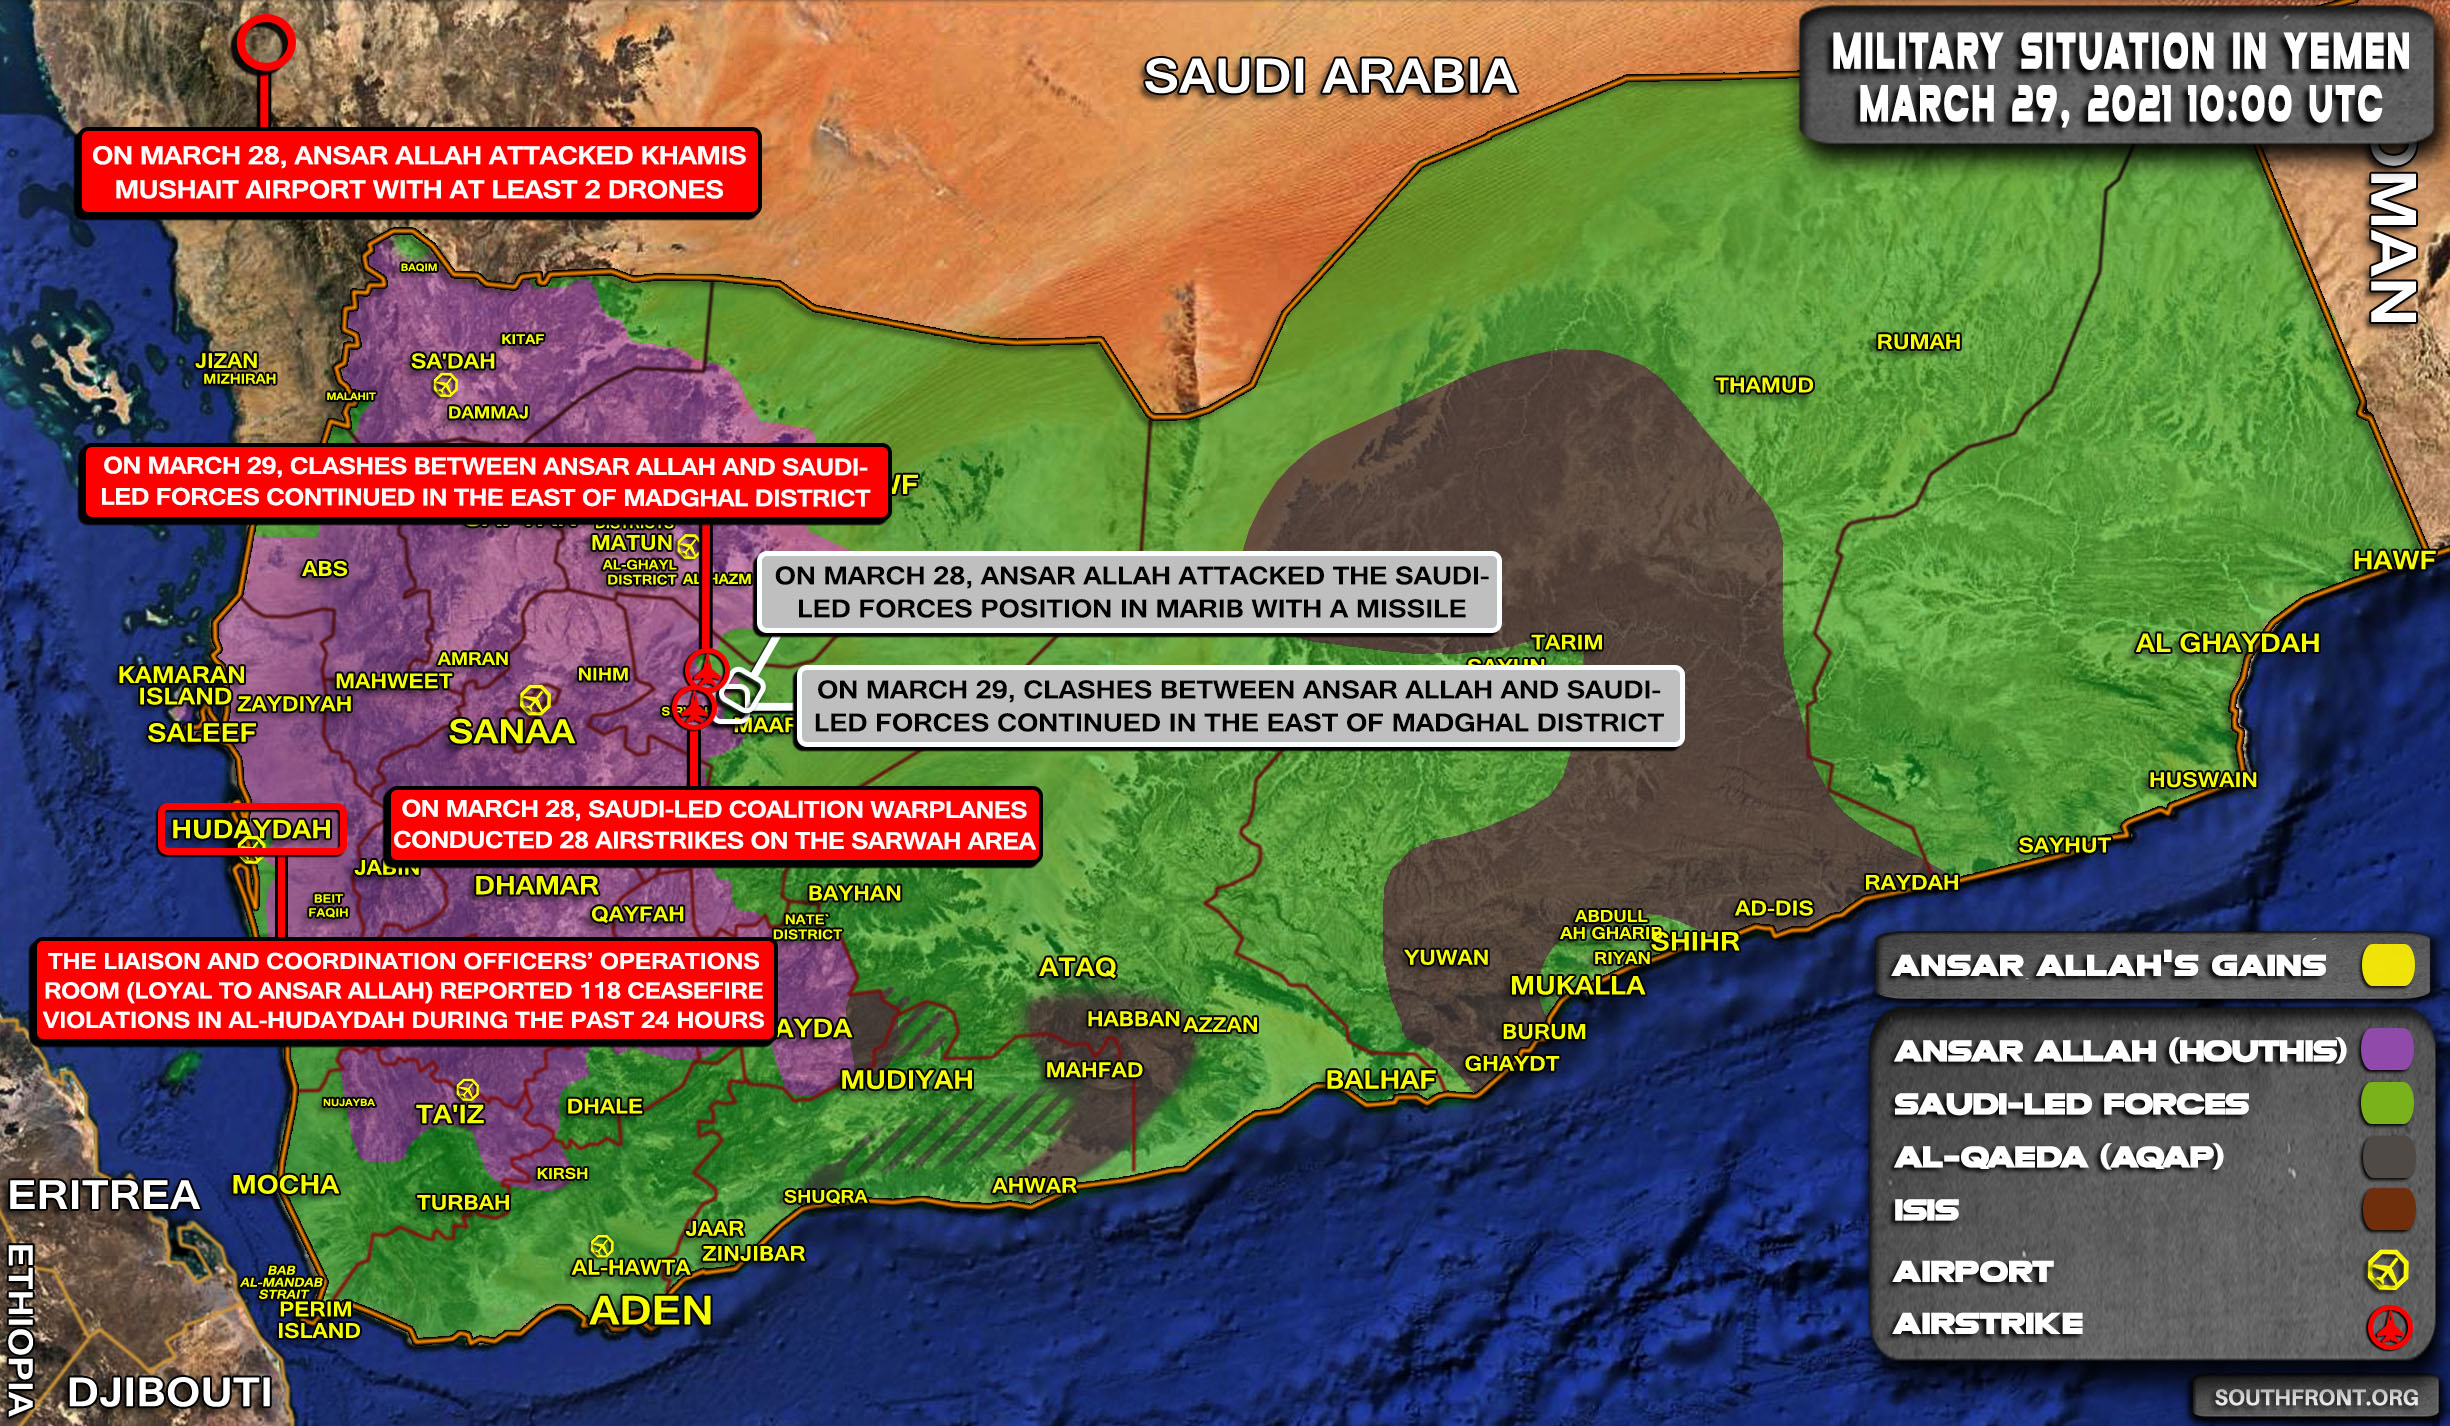 Military Situation In Yemen On March 29, 2021 (Map Update)